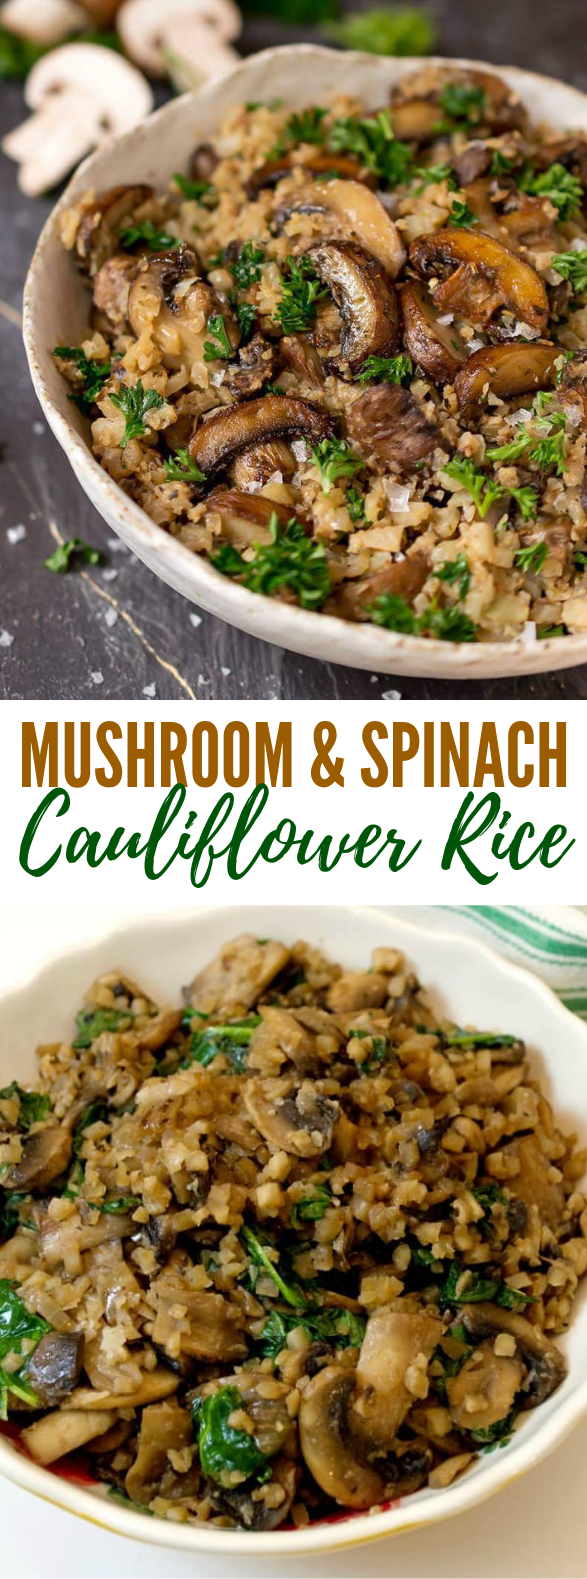 Photo of LOW CARB MUSHROOM & SPINACH CAULIFLOWER RICE #diet #thanksgiving